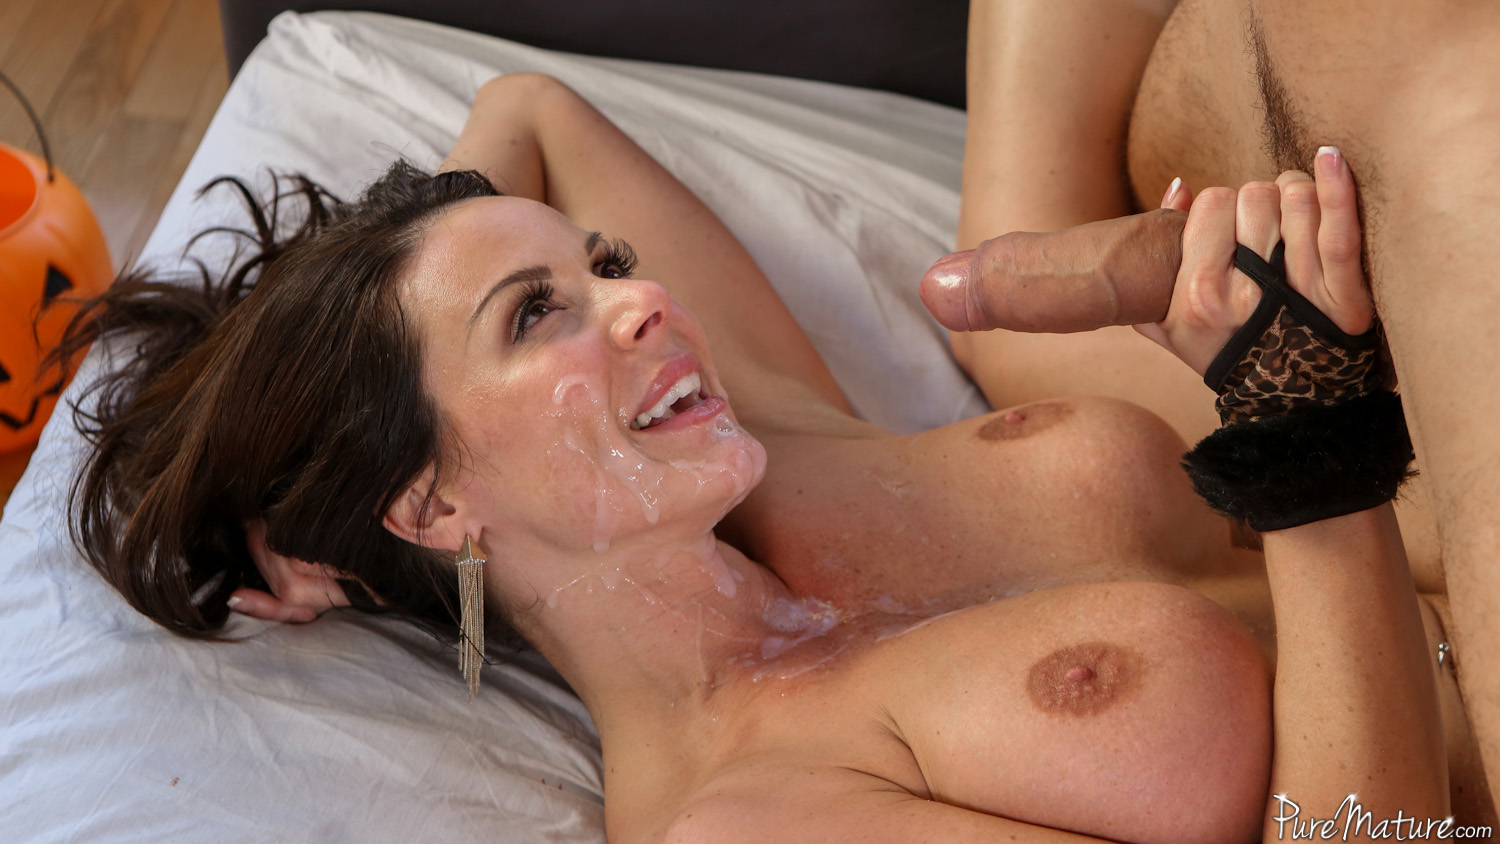 Kendra lust milf sex for lovely